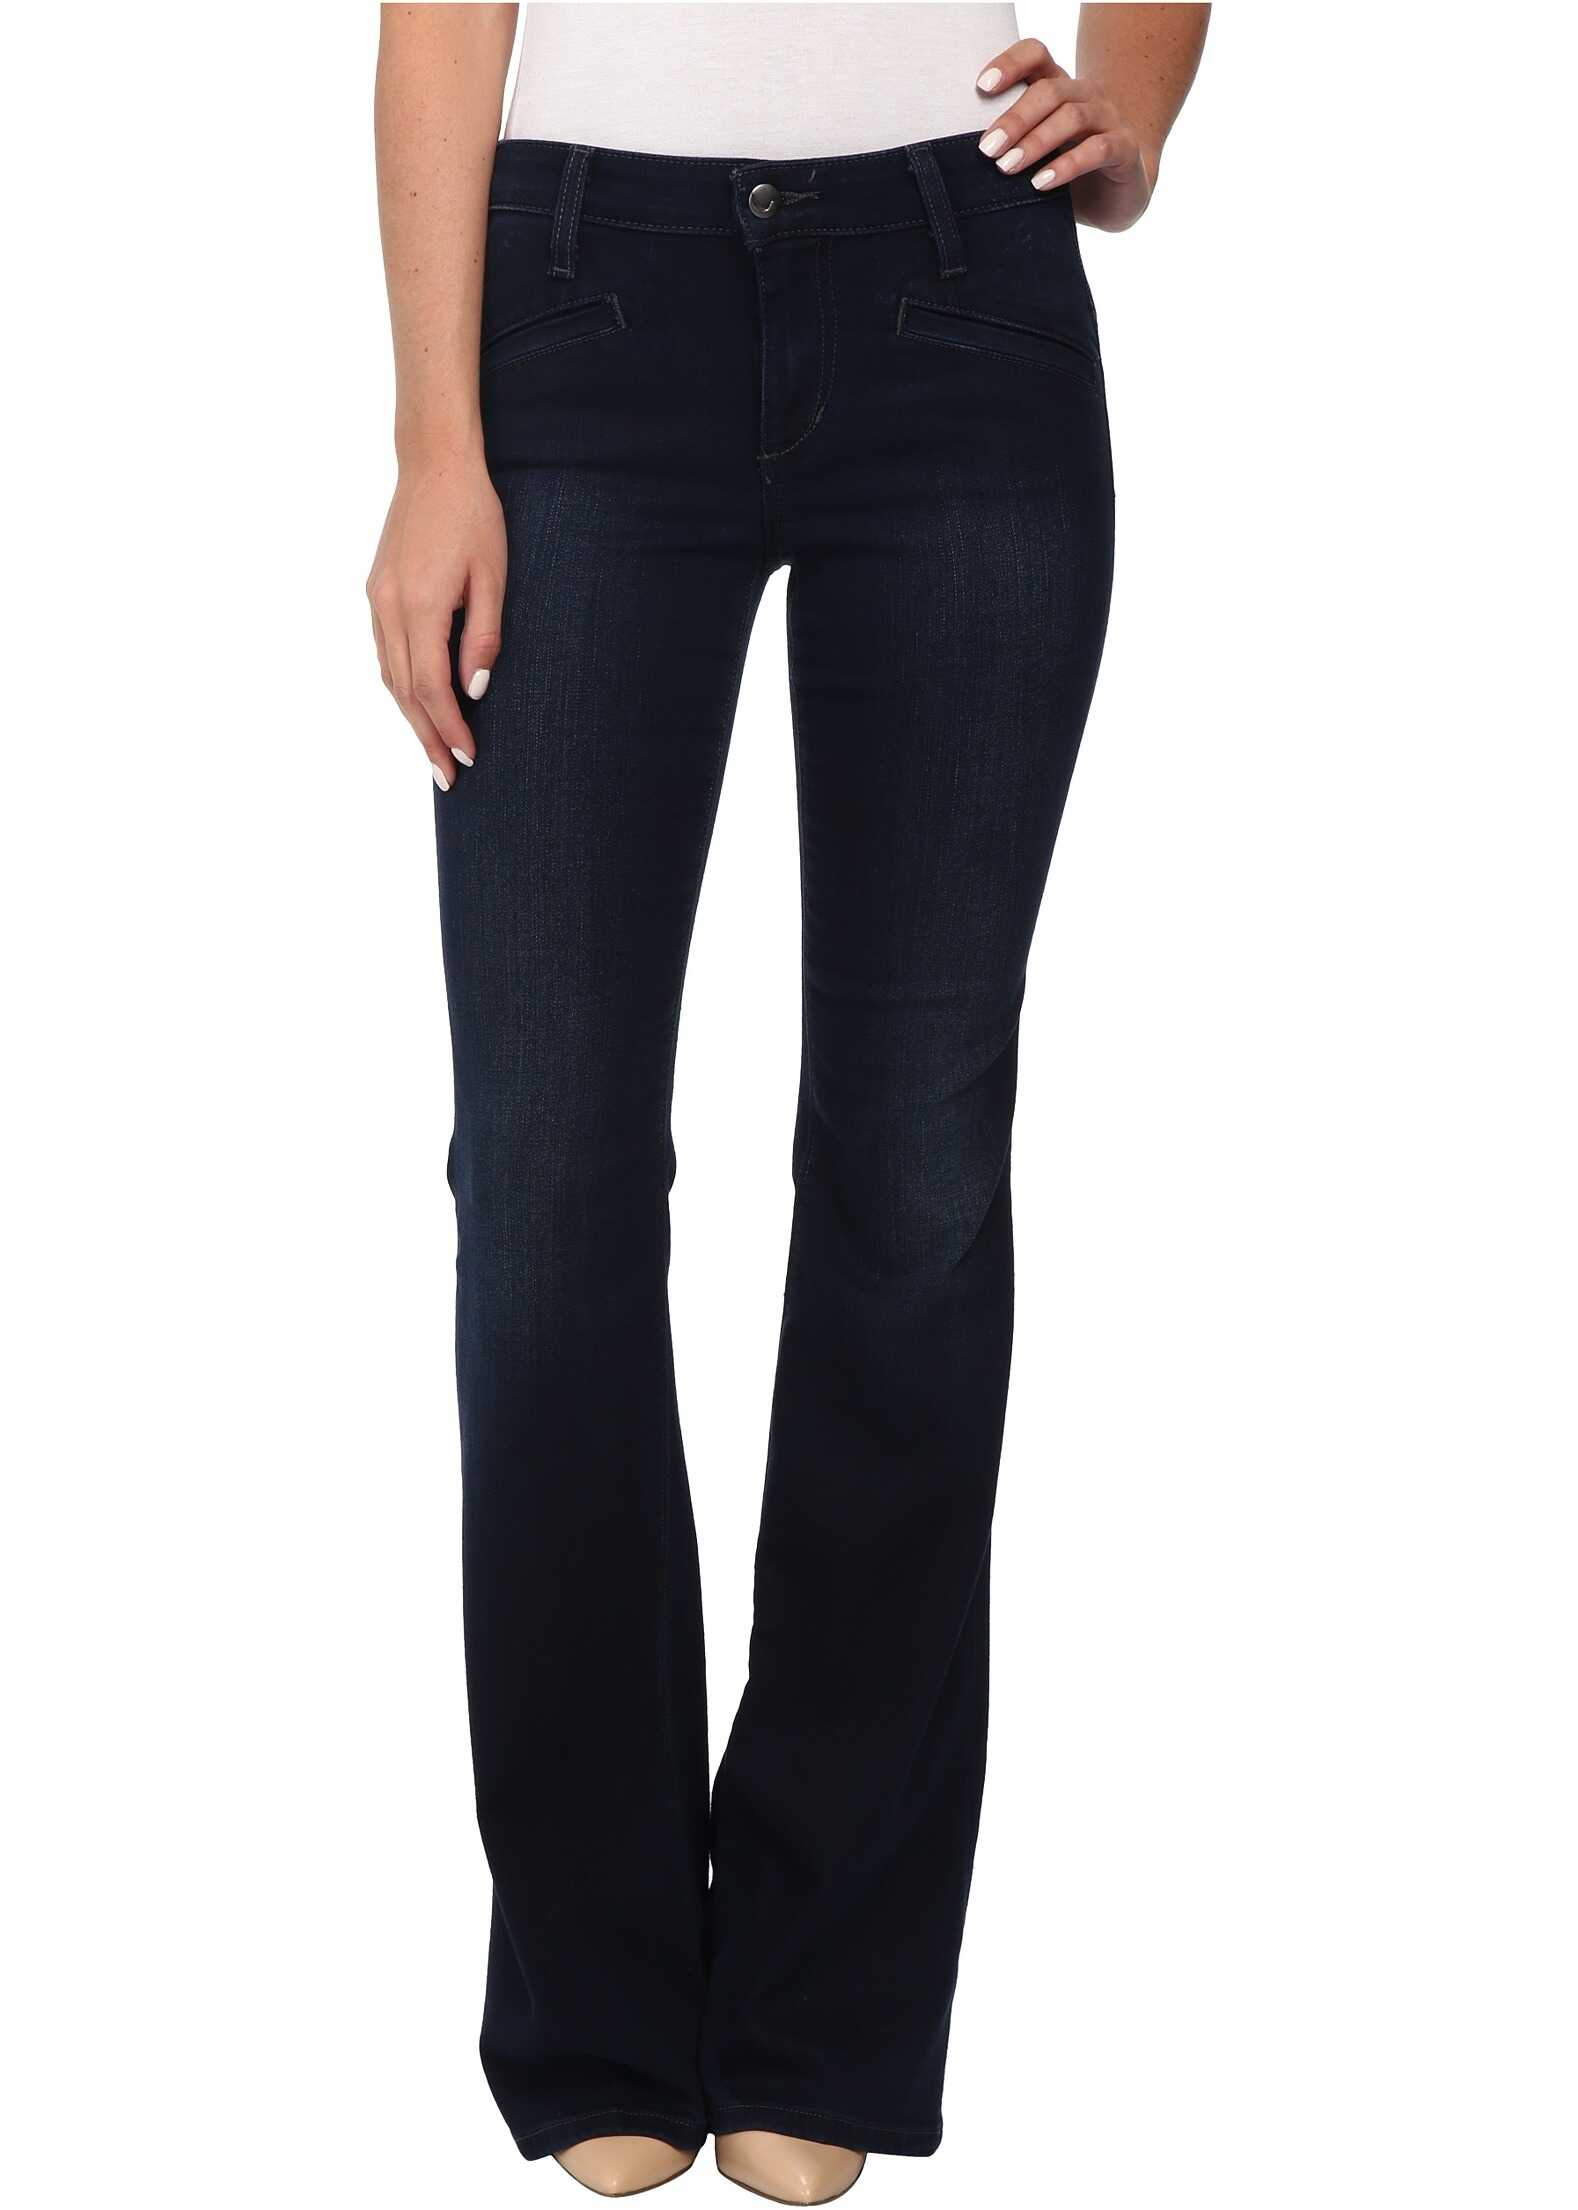 Joe's Jeans Flawless - The Mustang Flare in Cecily* Cecily